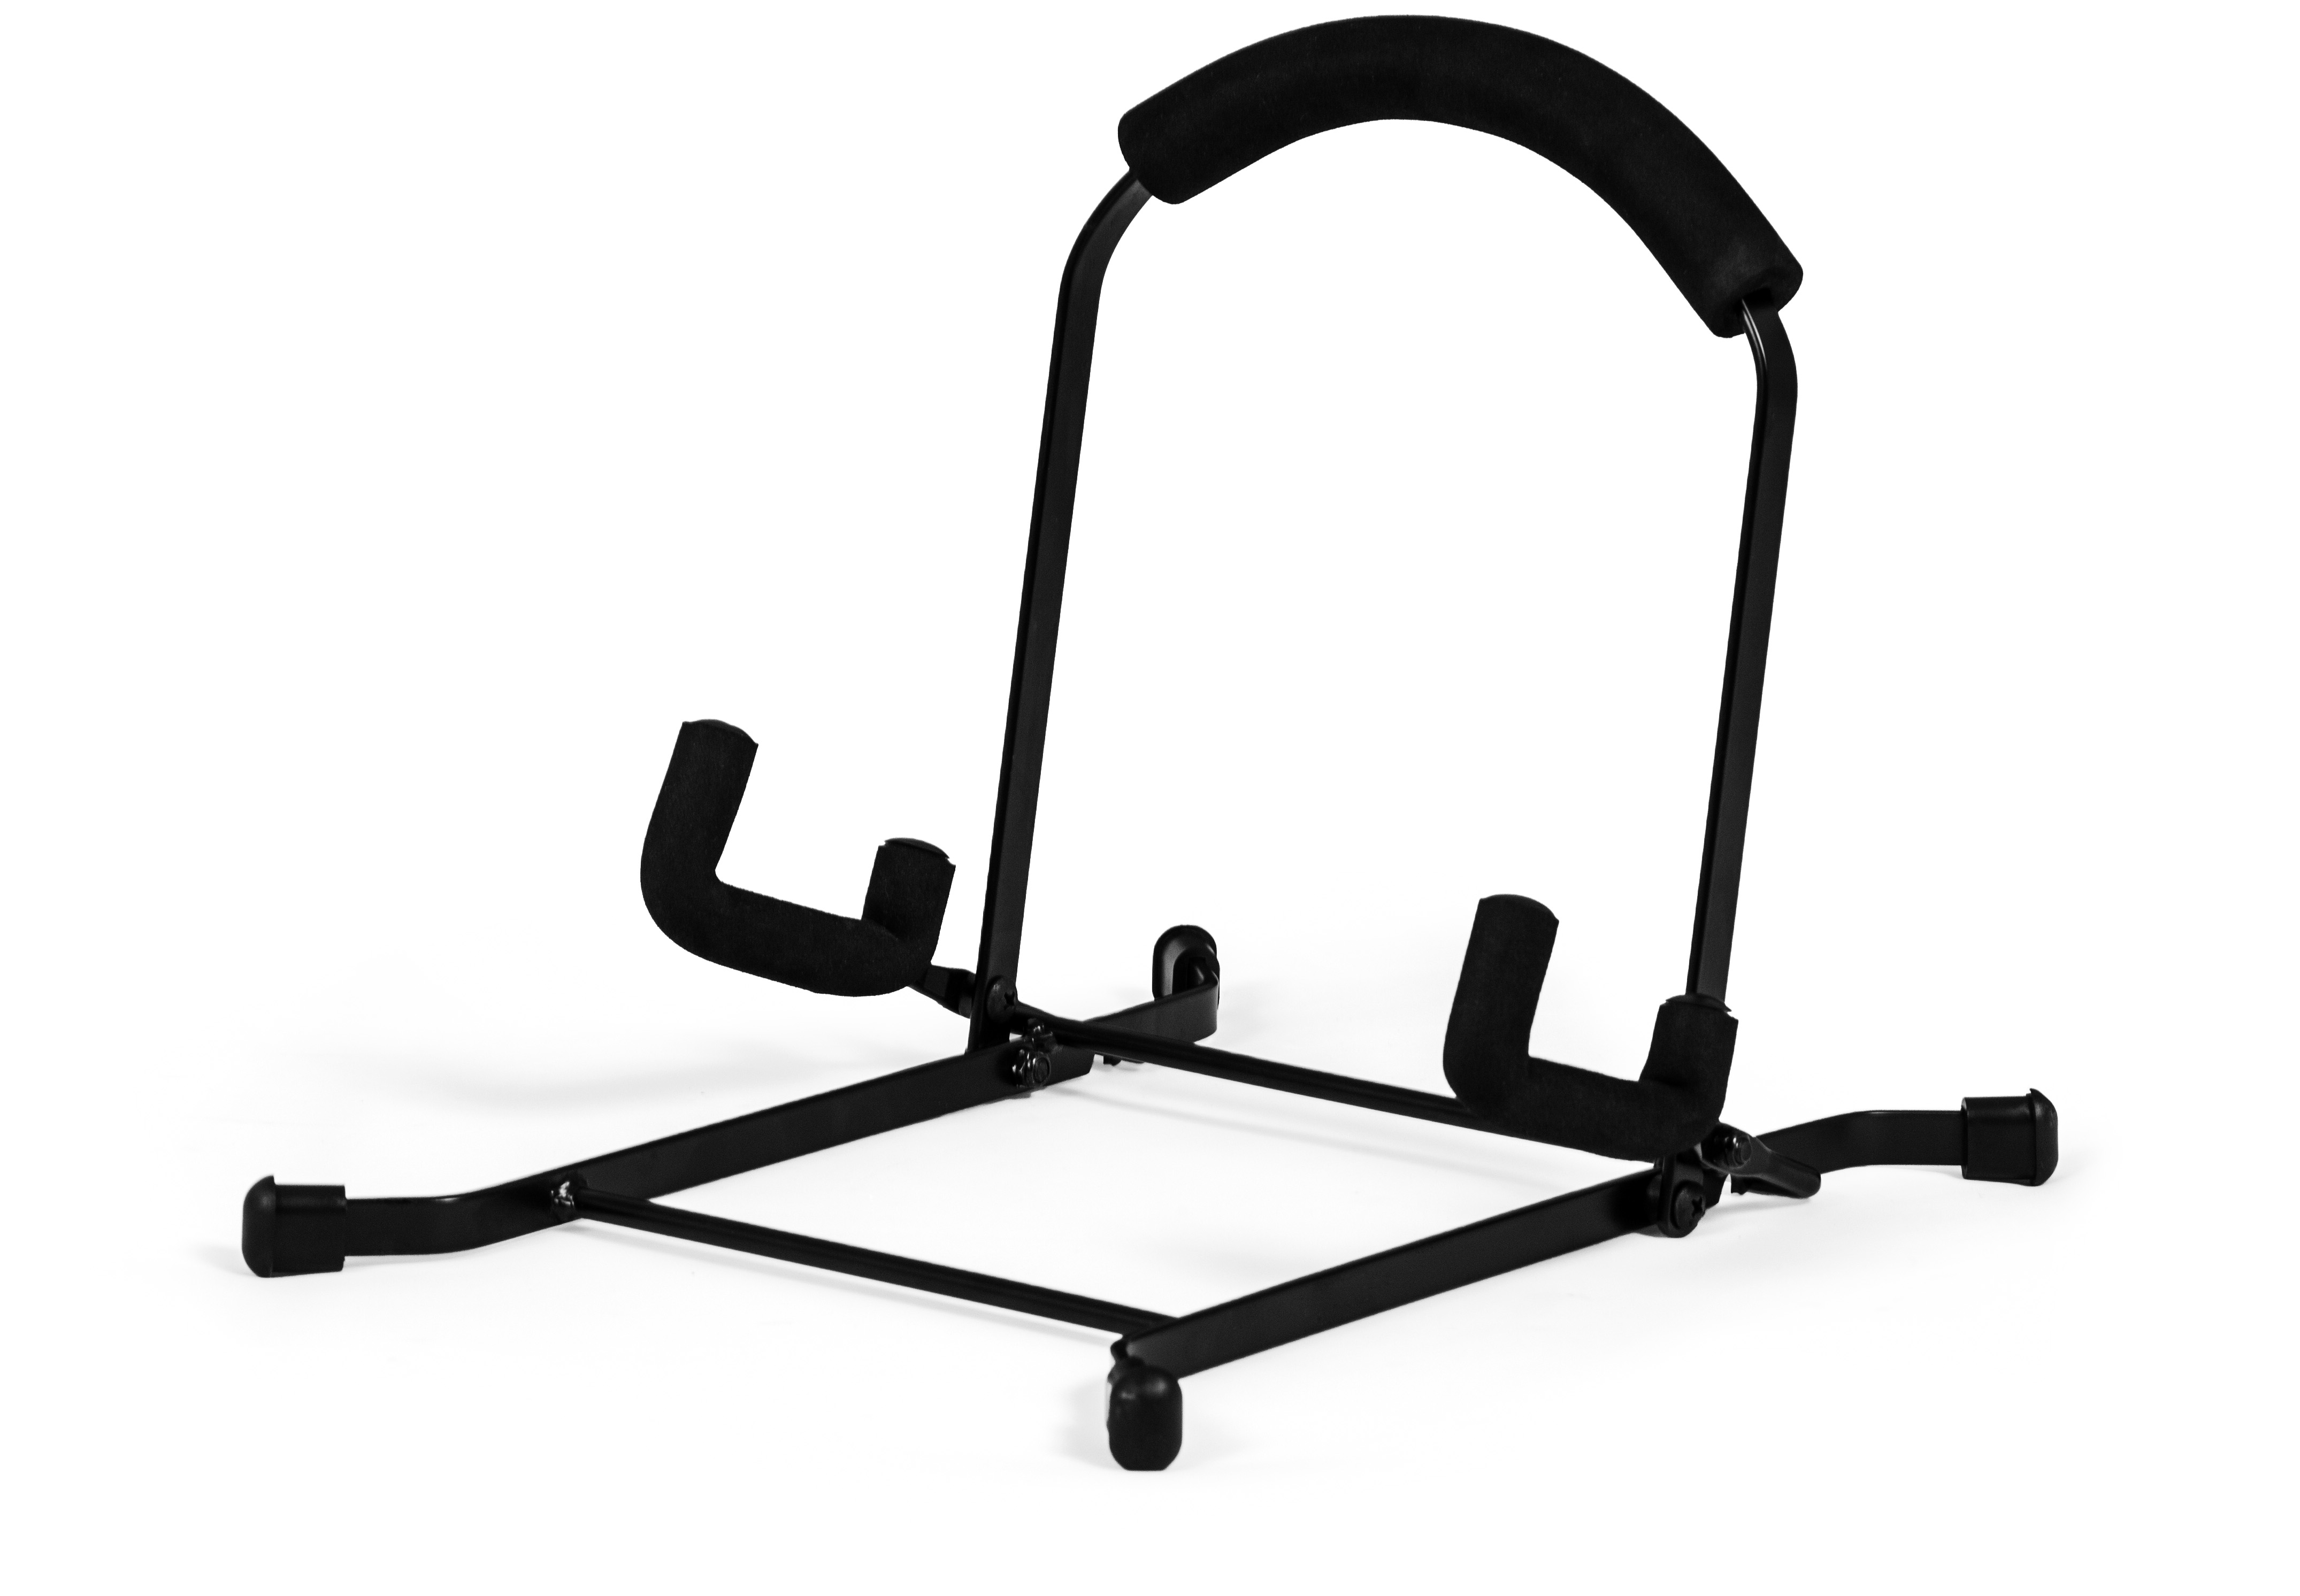 Nomad NGS-2421 Compact Collapsible Electric Guitar Stand